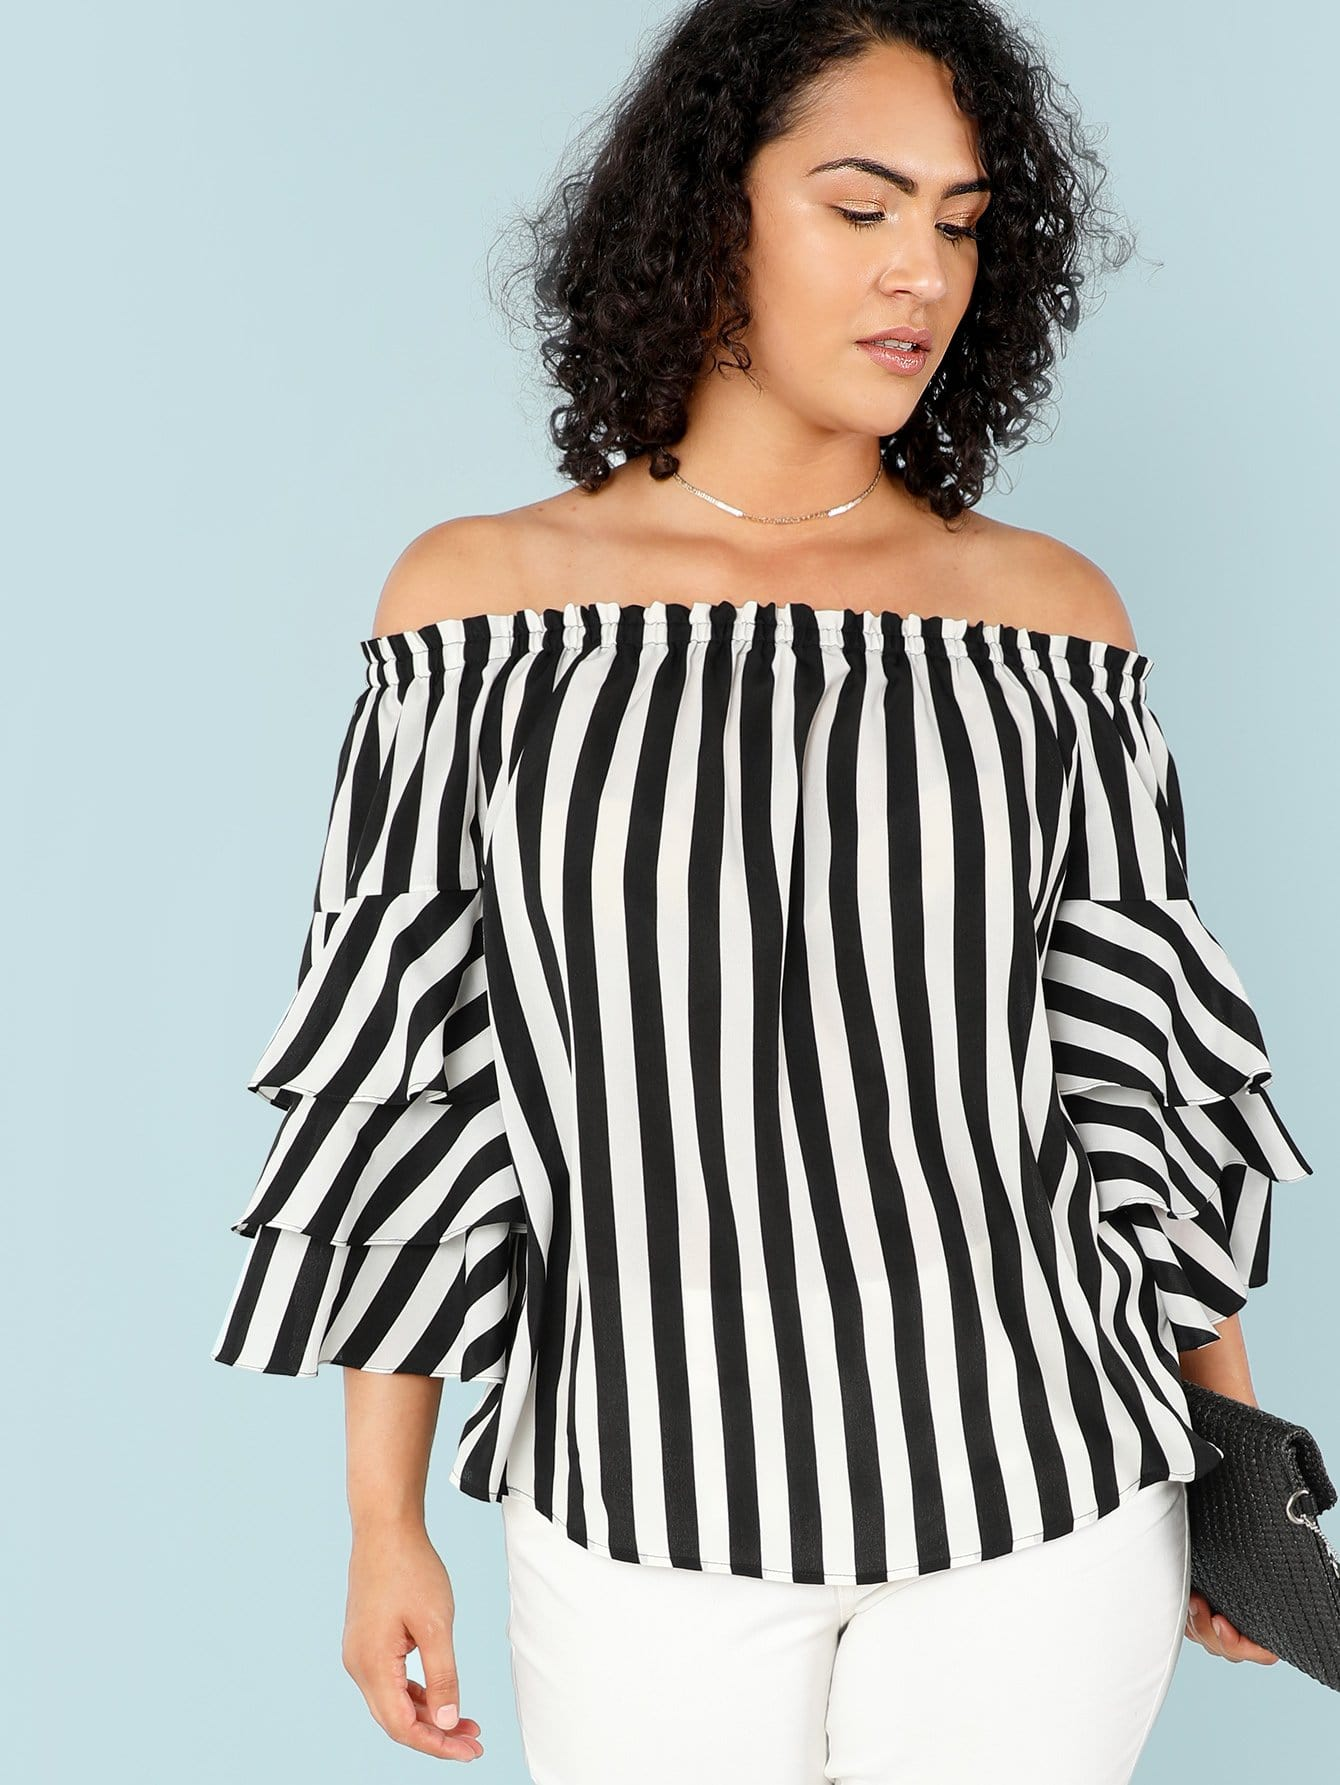 Layered Flounce Sleeve Off Shoulder Striped Top floral lace shoulder layered flounce top